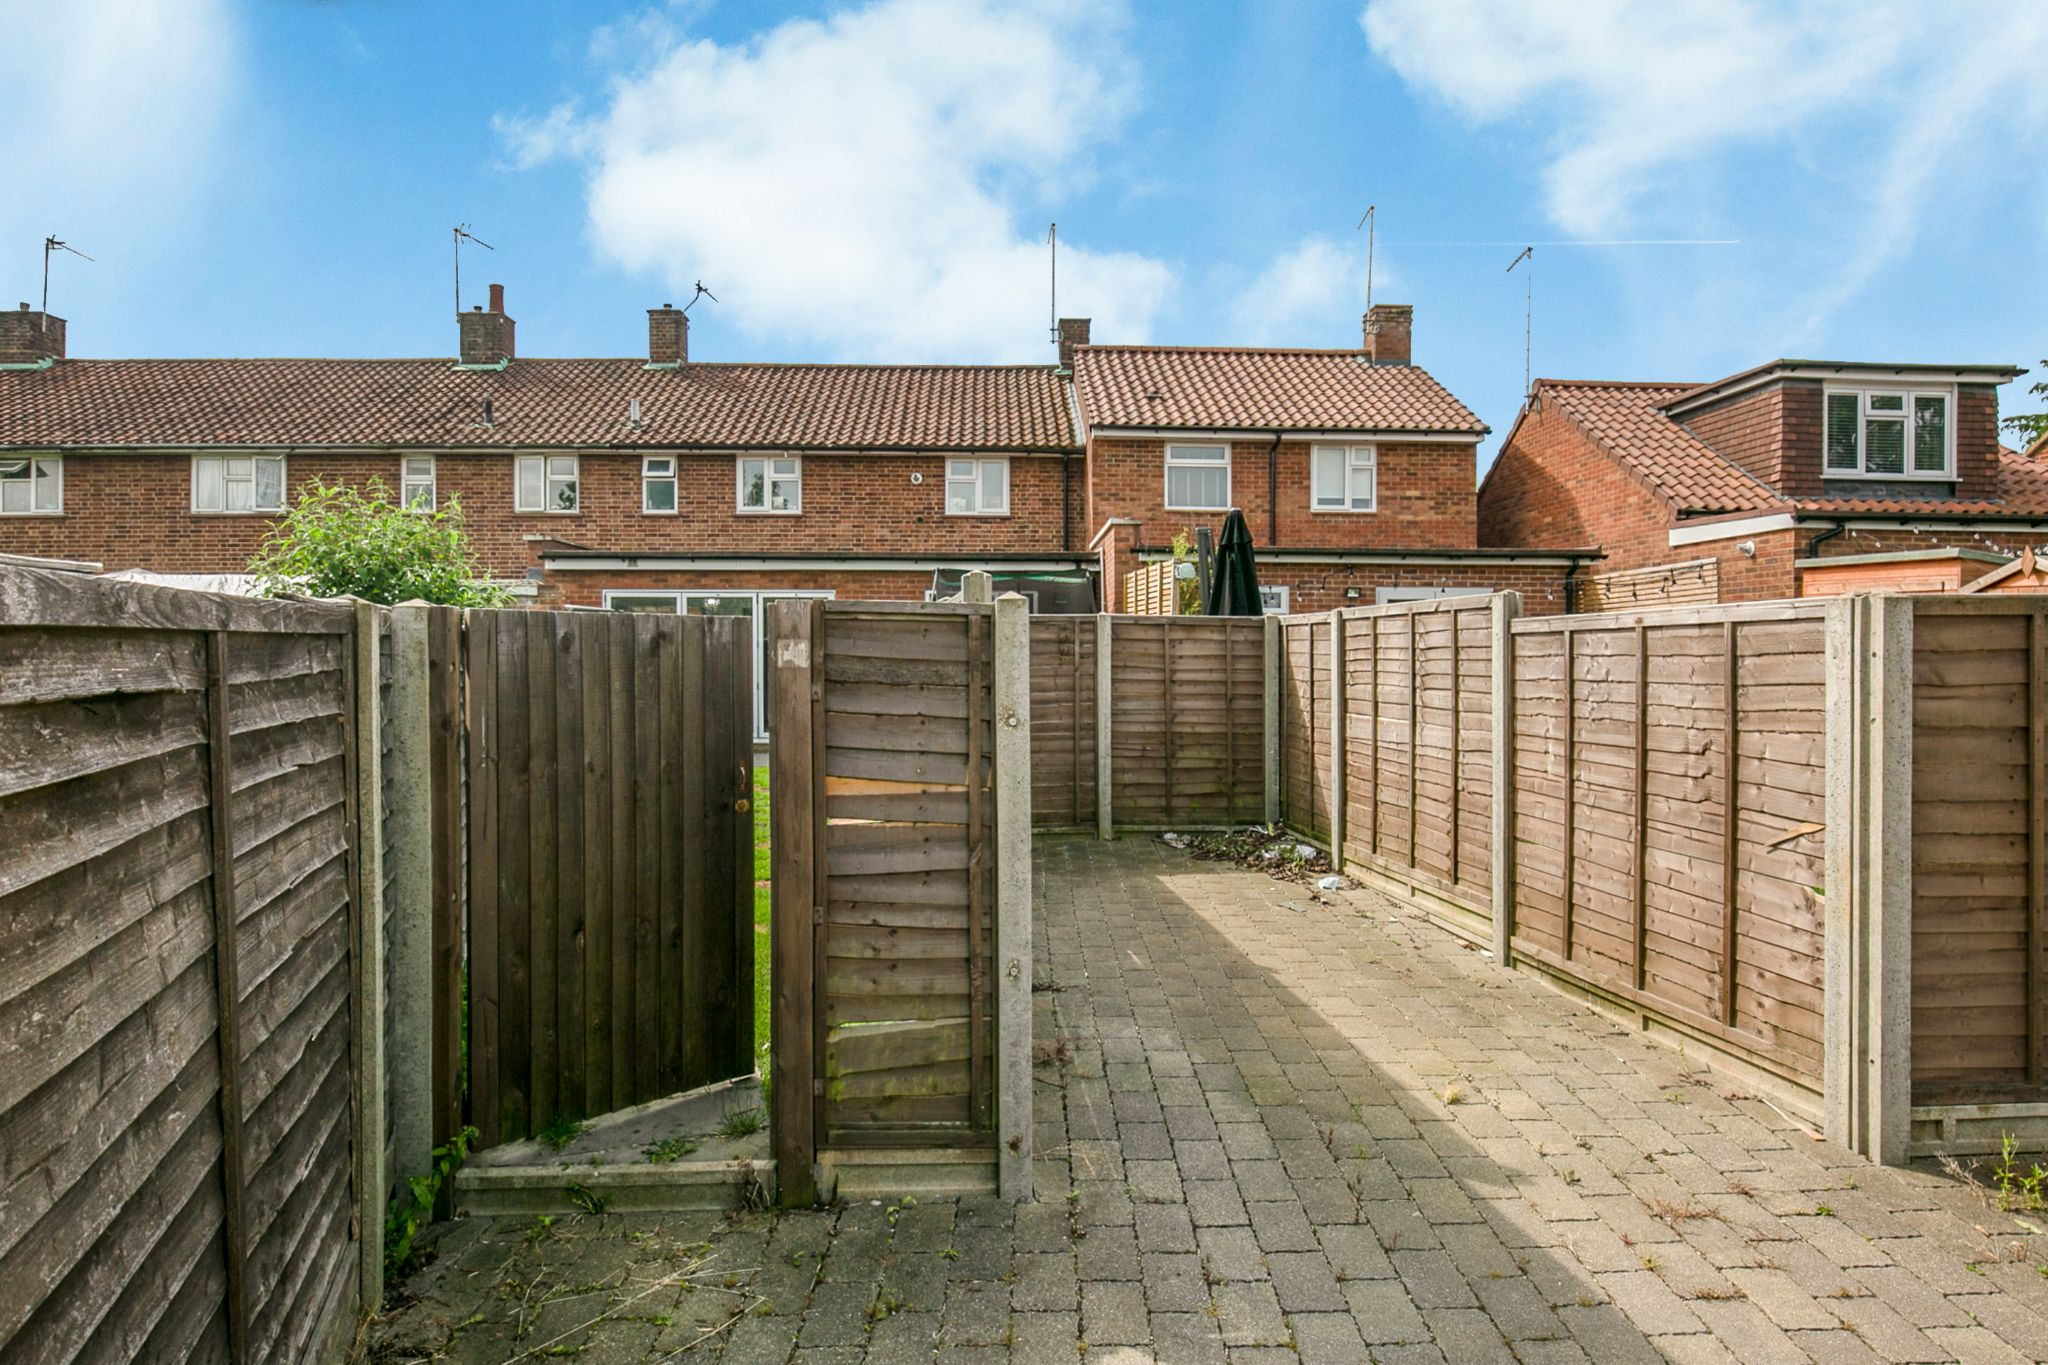 3 bedroom mid terraced house For Sale in Hatfield - Photograph 3